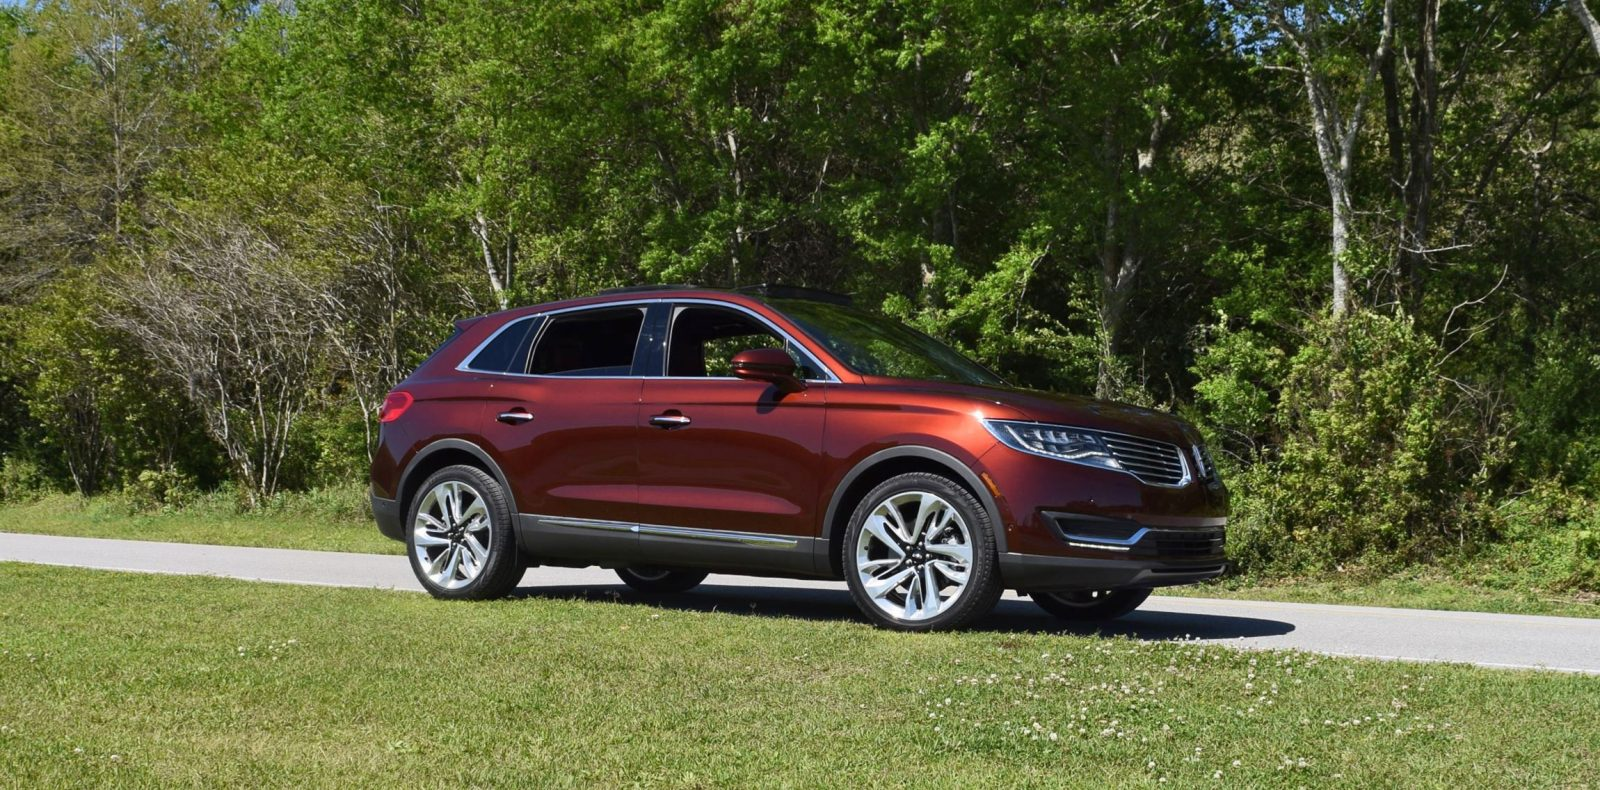 hd road test review 2016 lincoln mkx ecoboost awd best of awards car revs. Black Bedroom Furniture Sets. Home Design Ideas